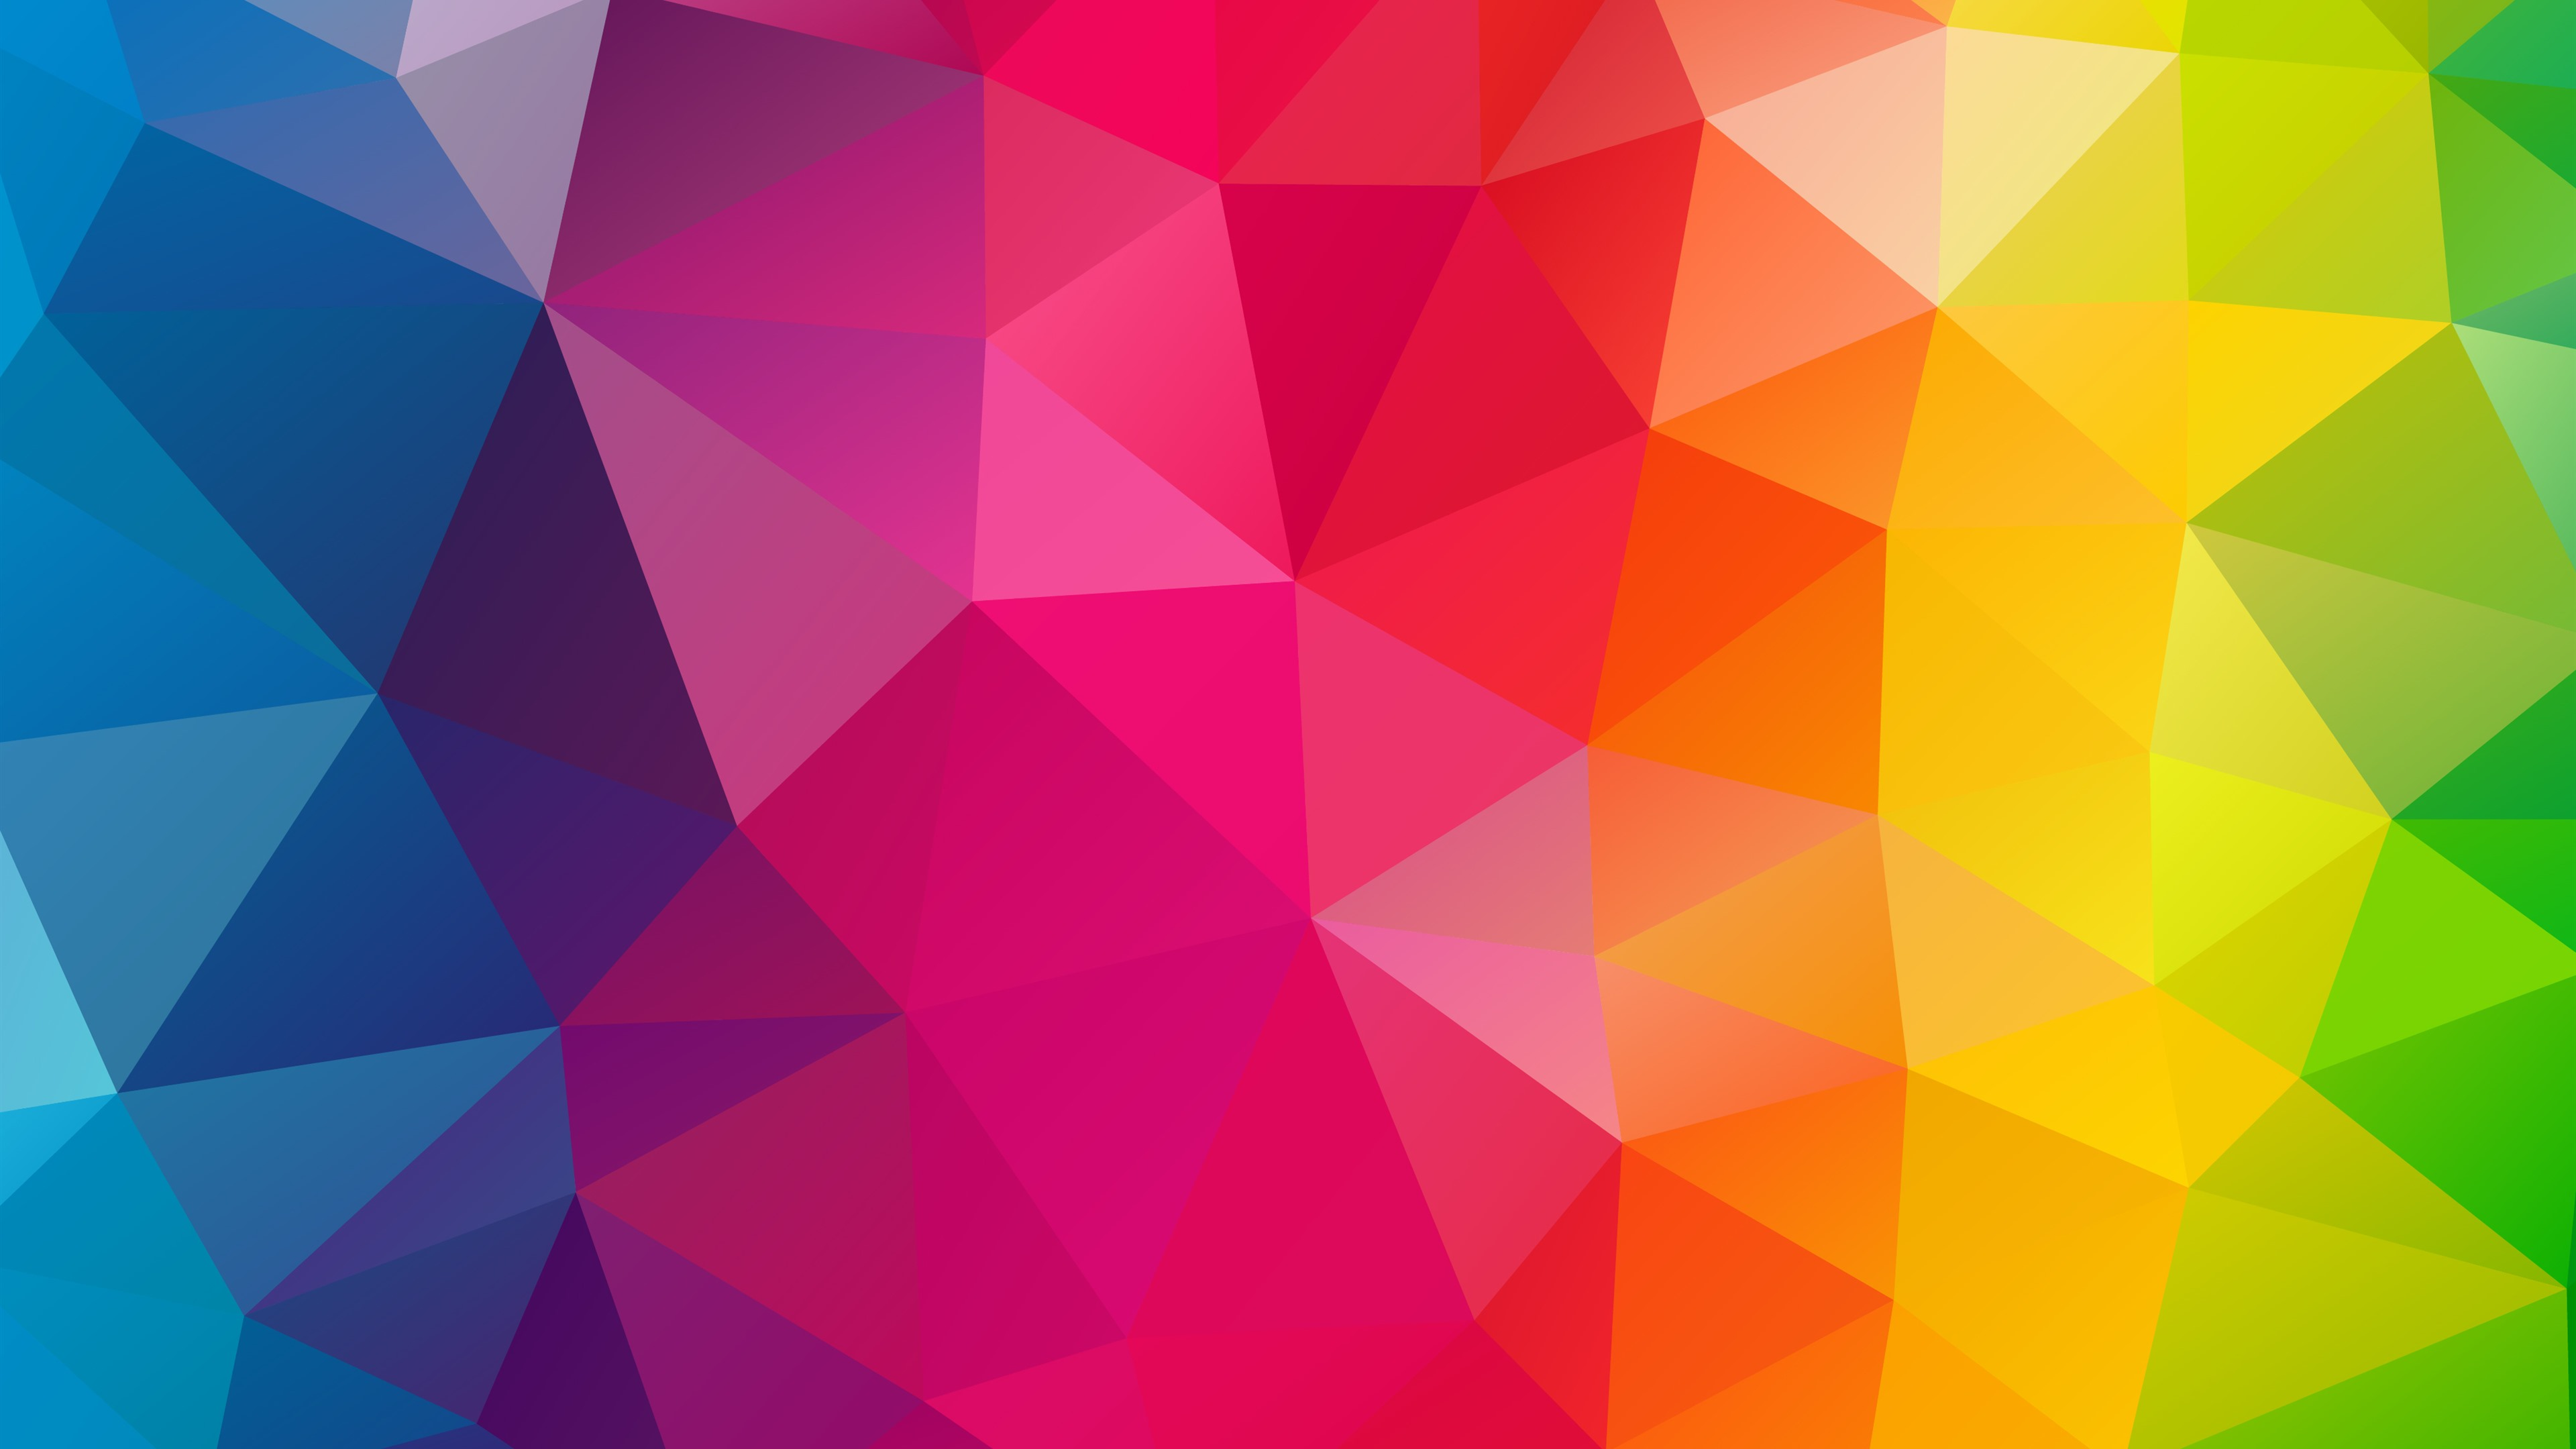 Wallpaper Triangles Combination Geometry Rainbow Colors